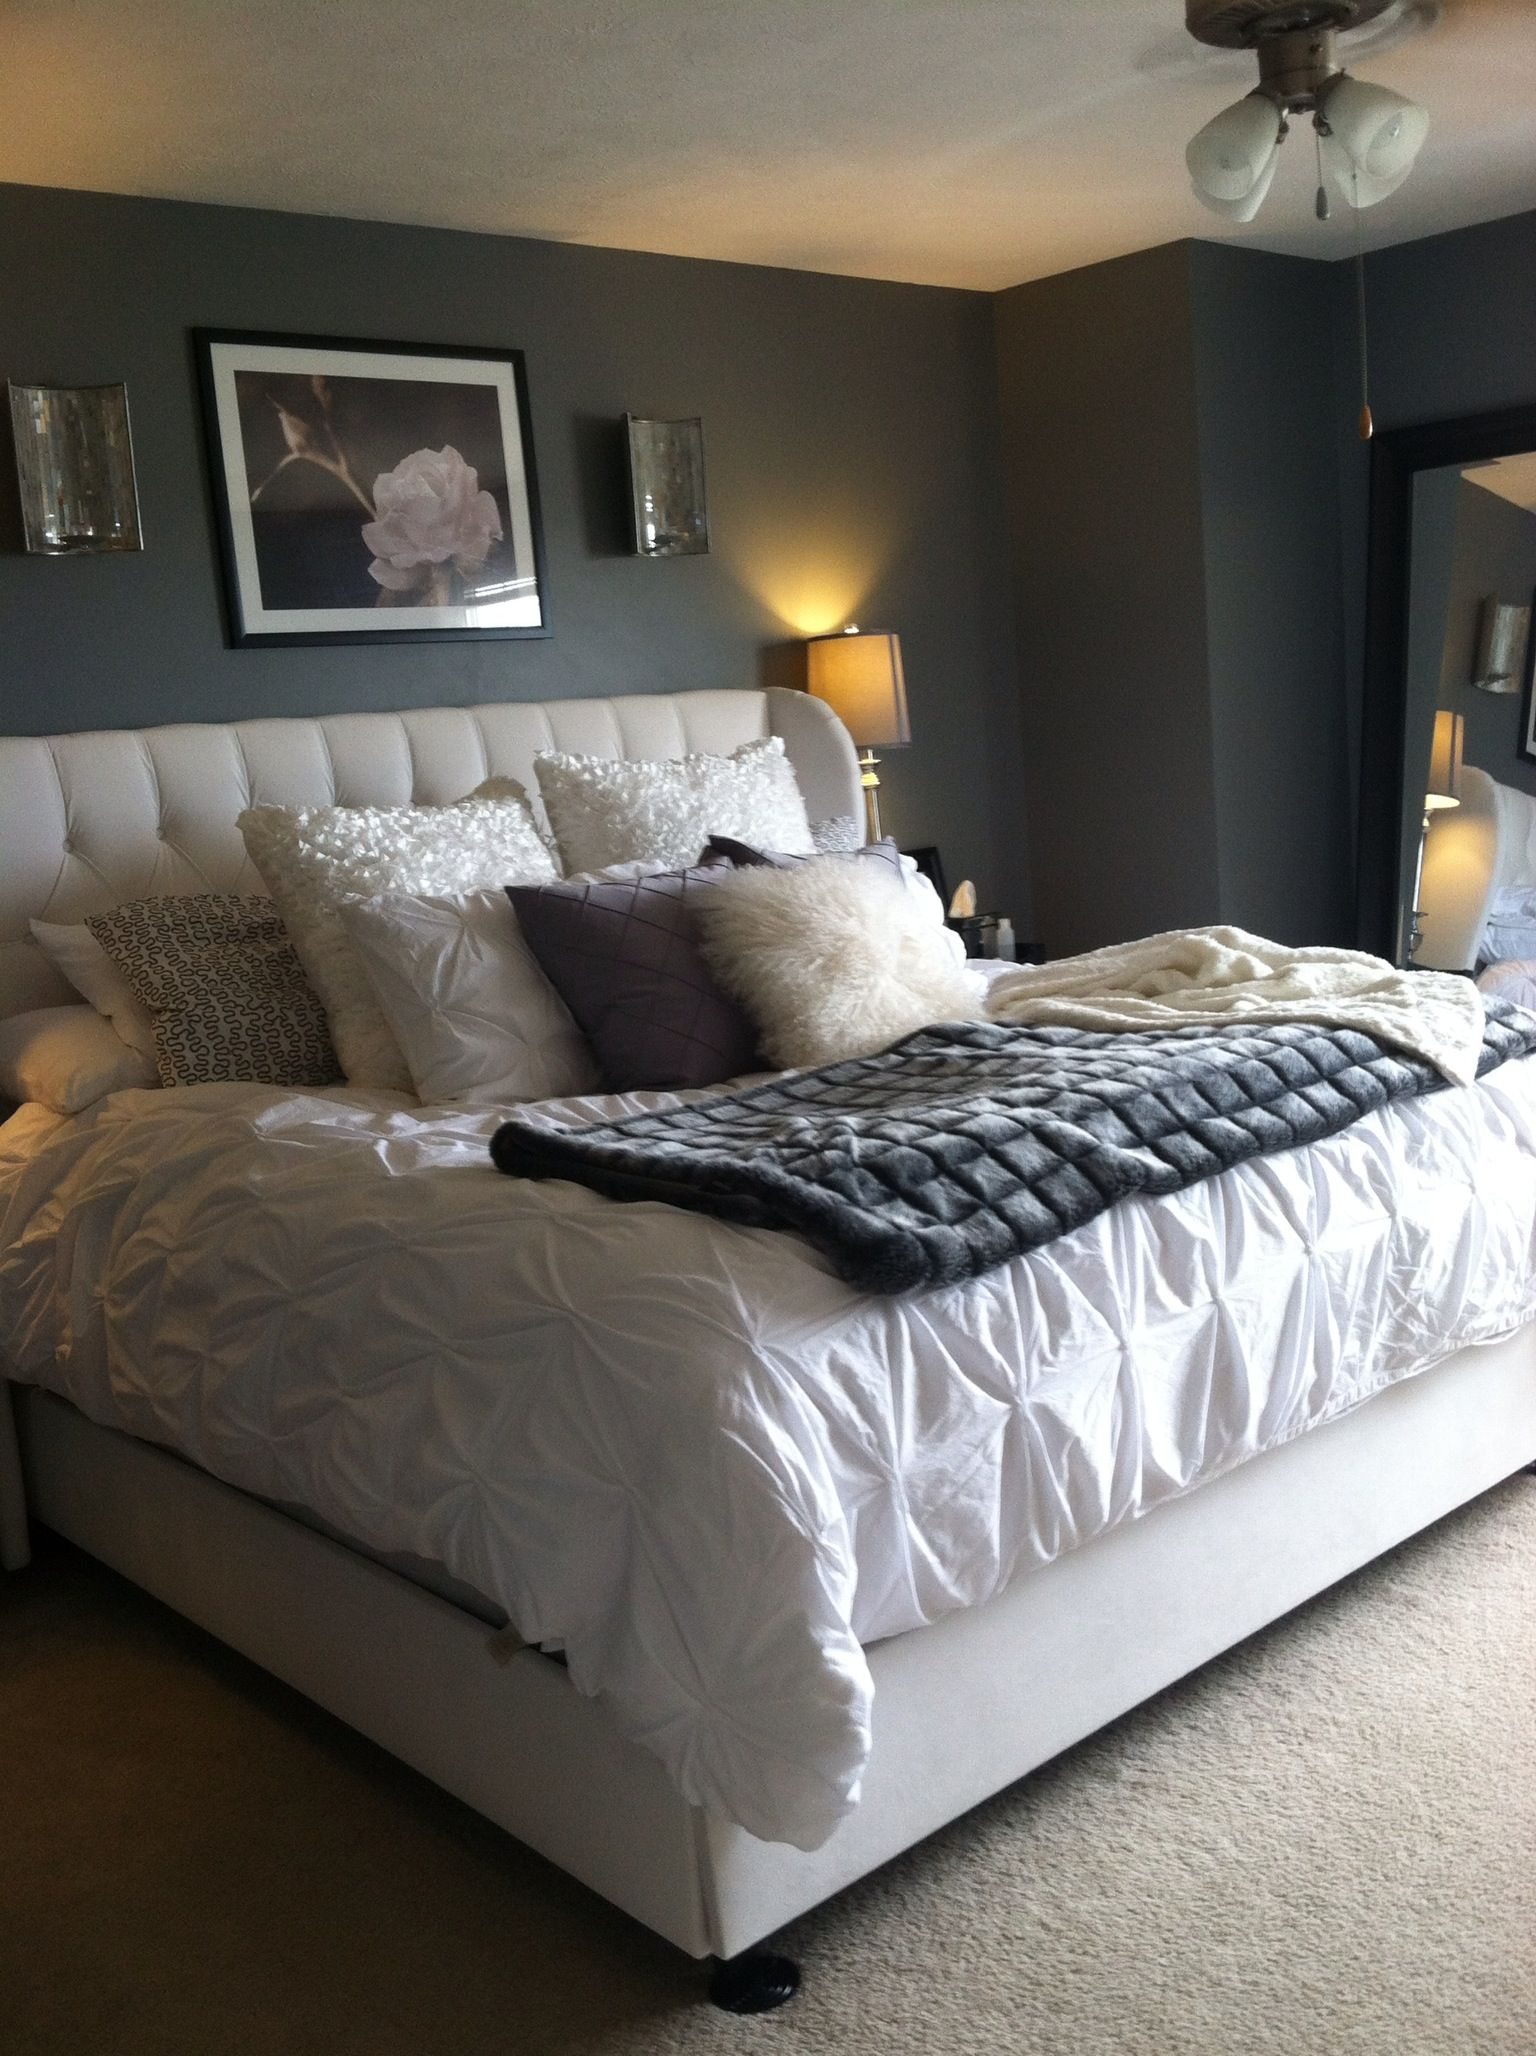 Cityscape by Sherwin Williams. My bedroom project! Home